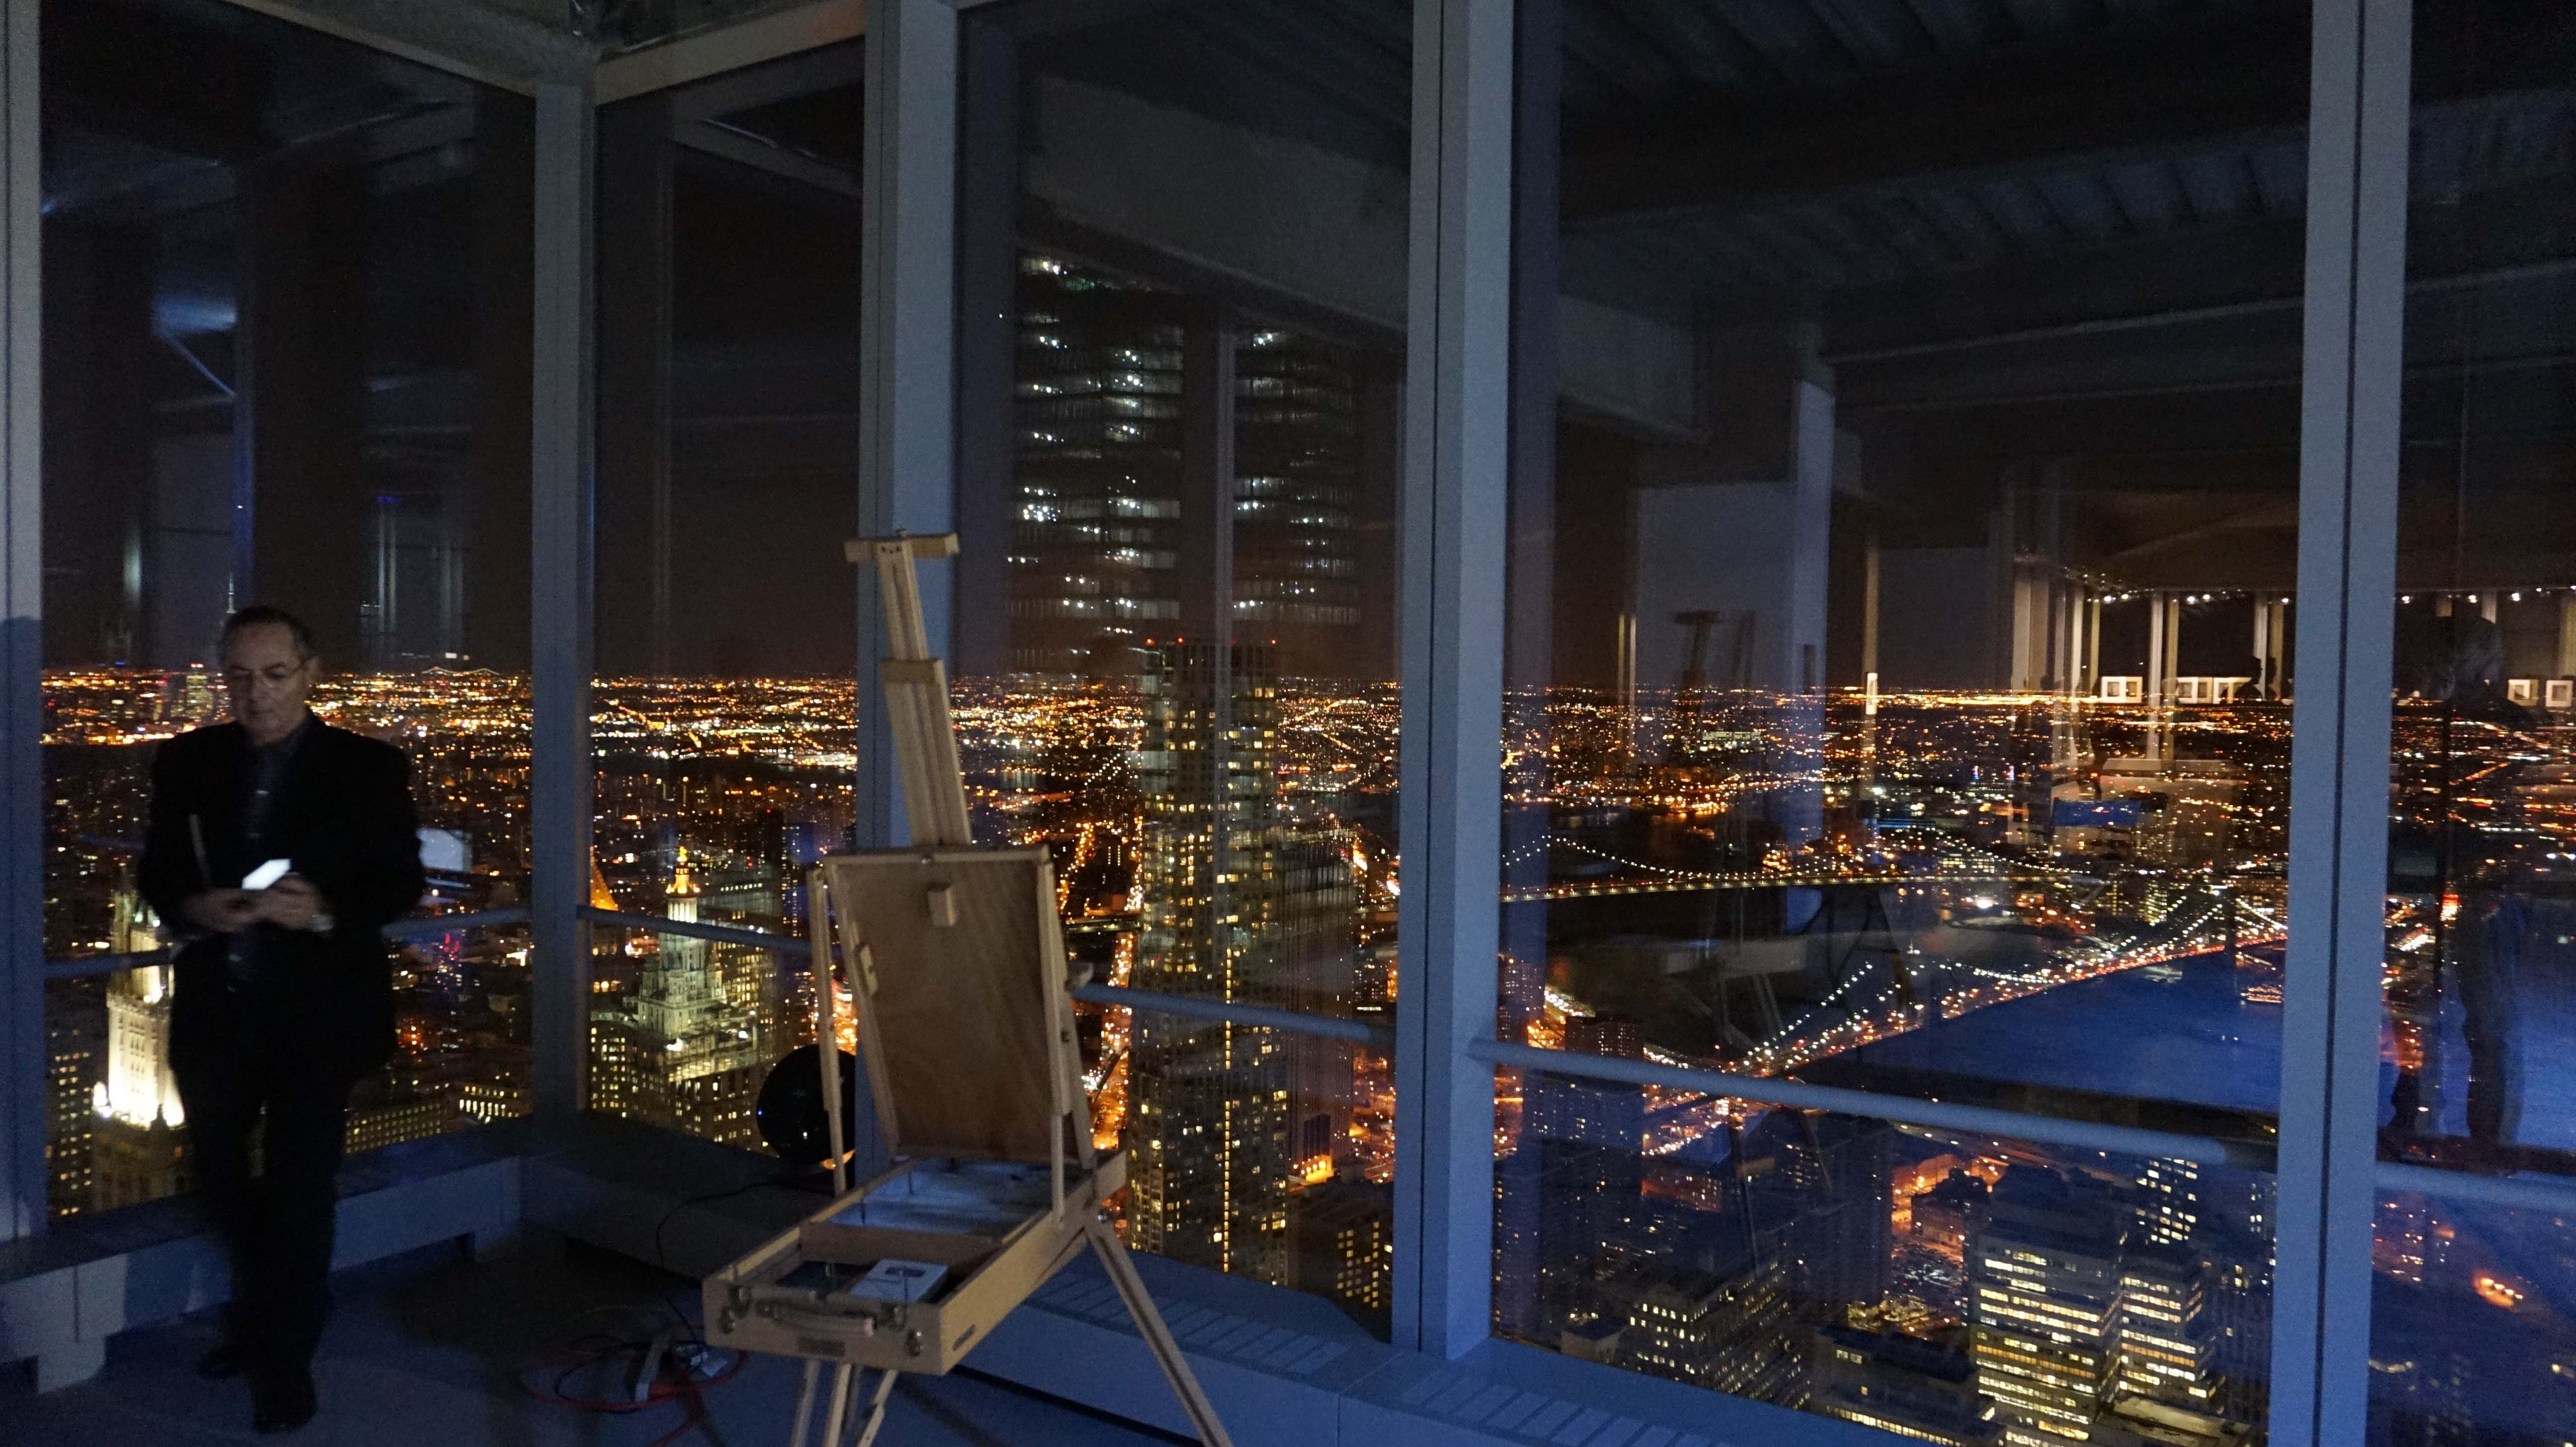 North East view WTC 4 night